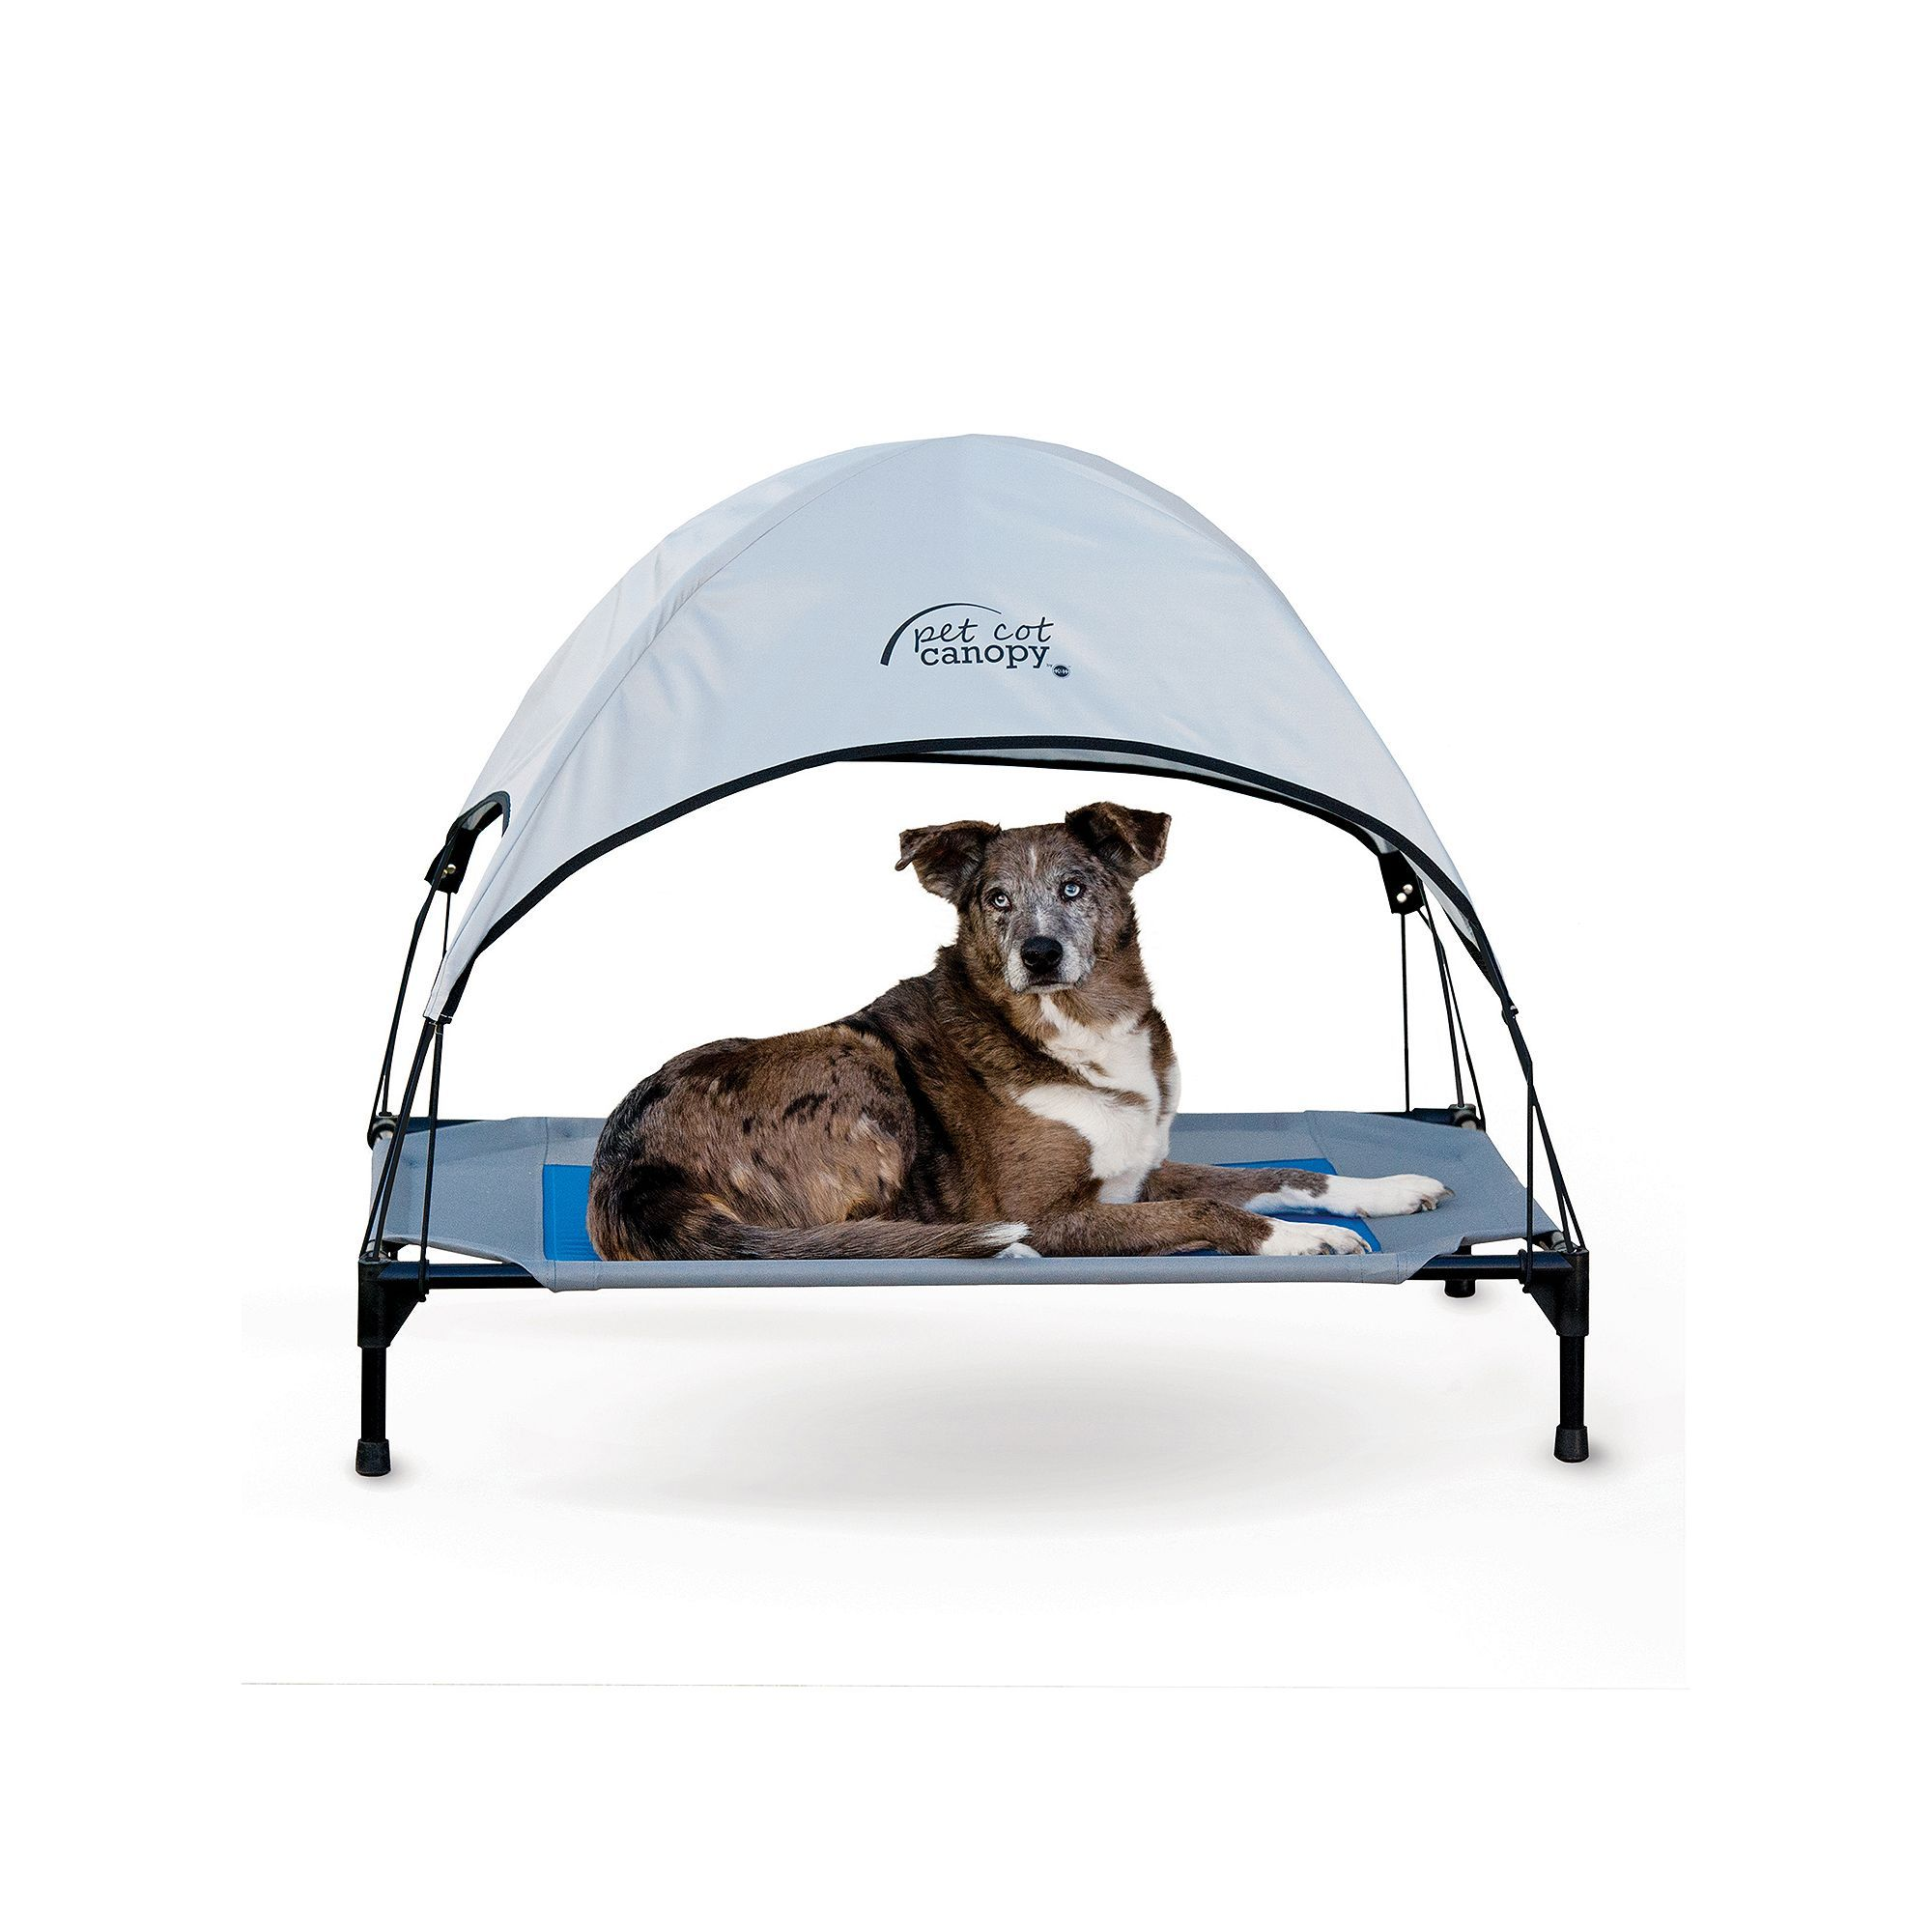 K&H Large Blue Pet Cot Canopy, Grey Cot canopy, Canopy